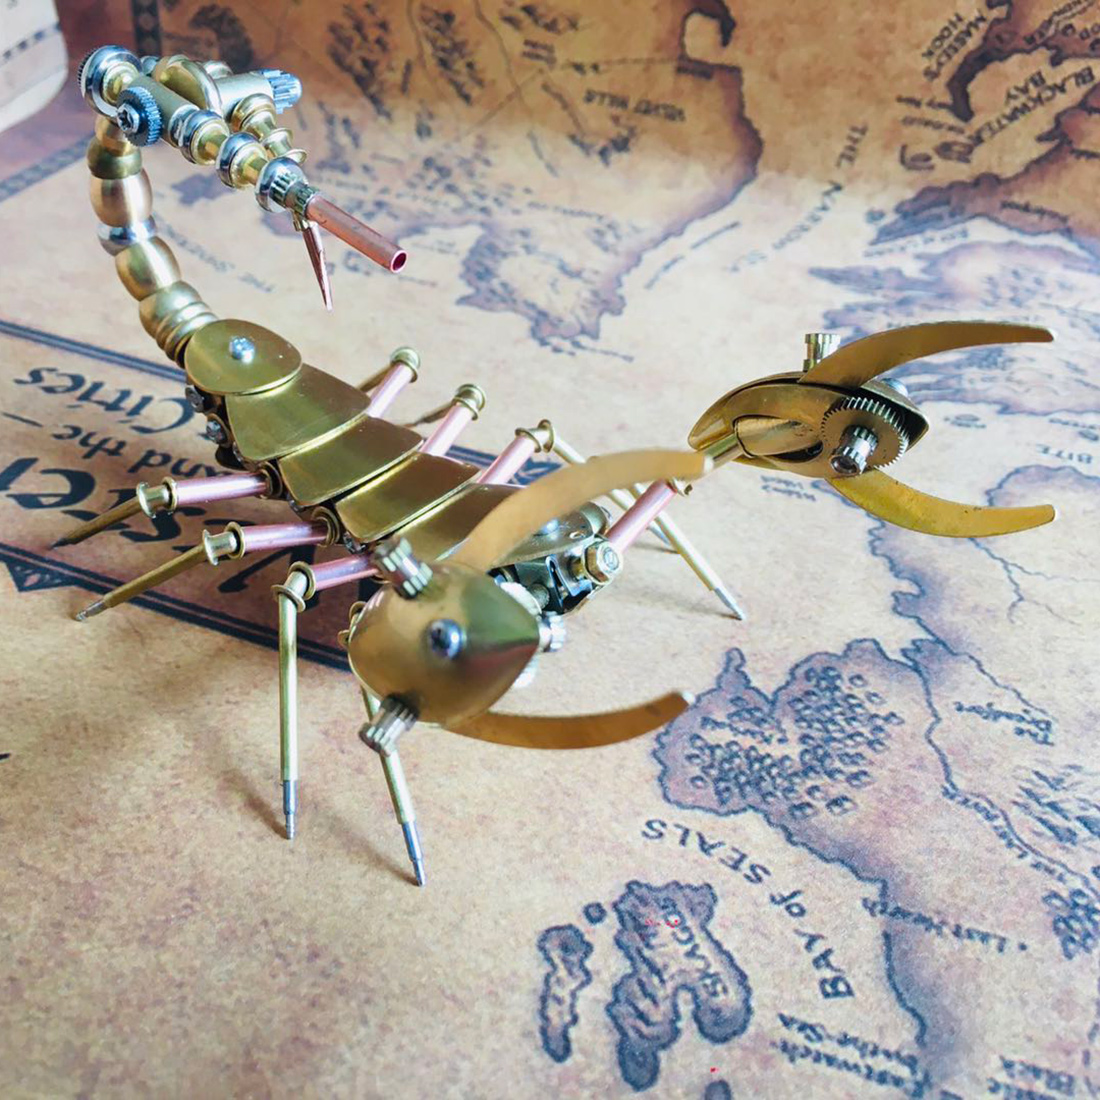 Mechanical Scorpion 3D Puzzle Metal Insect Model